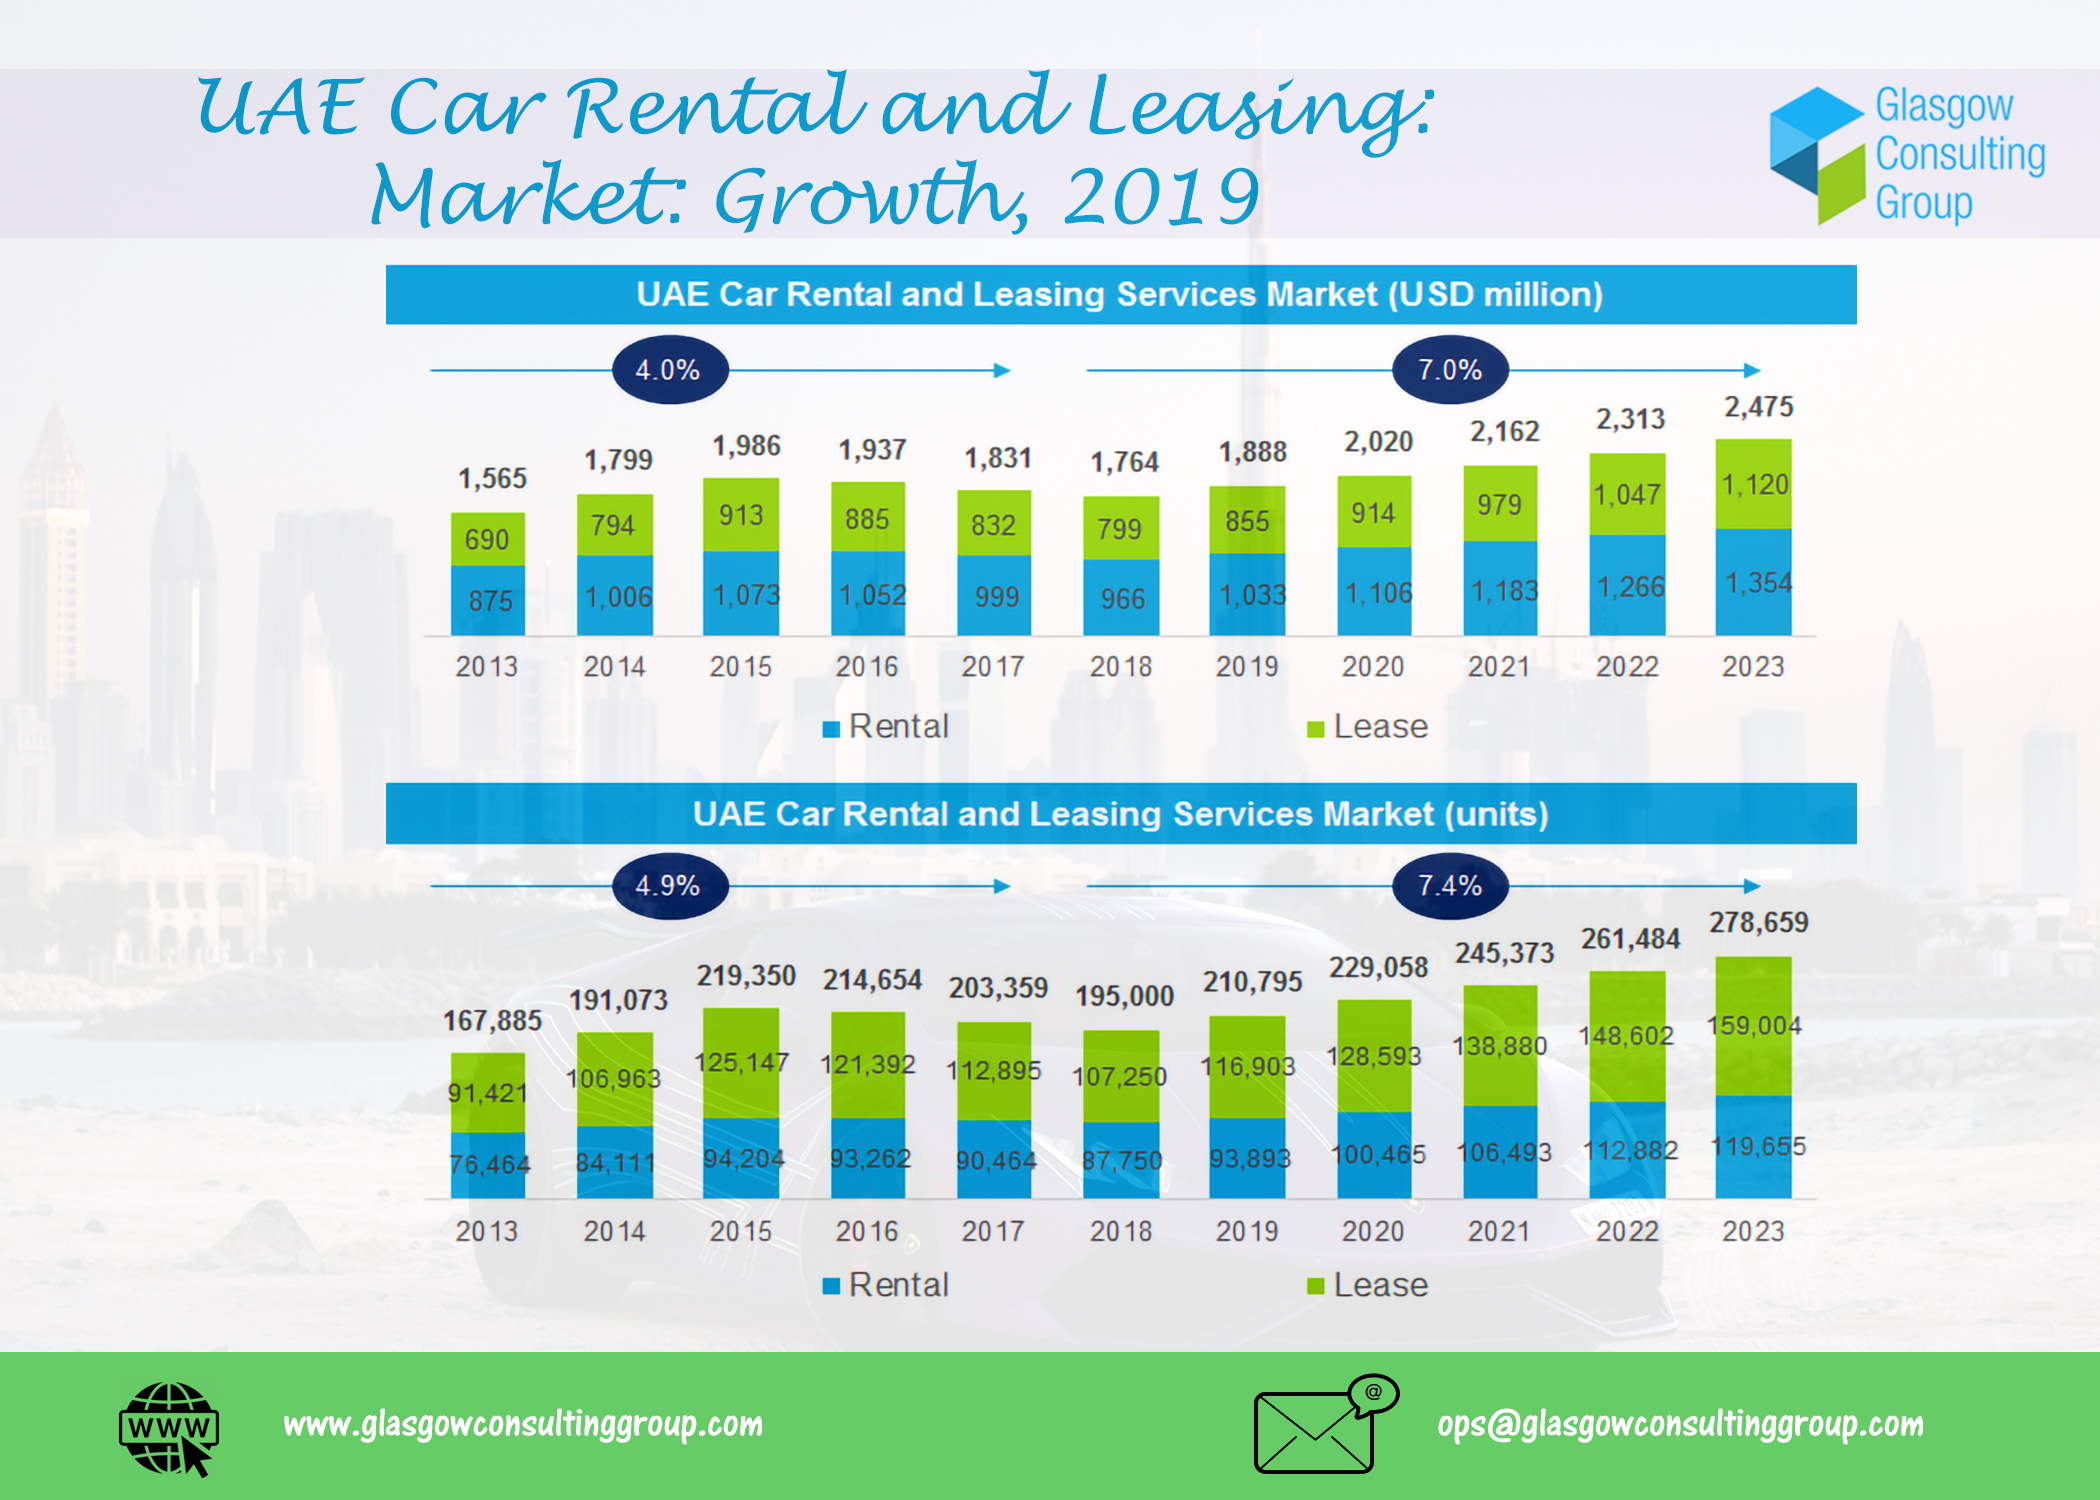 UAE Car Rental and Leasing Market Growth 2019